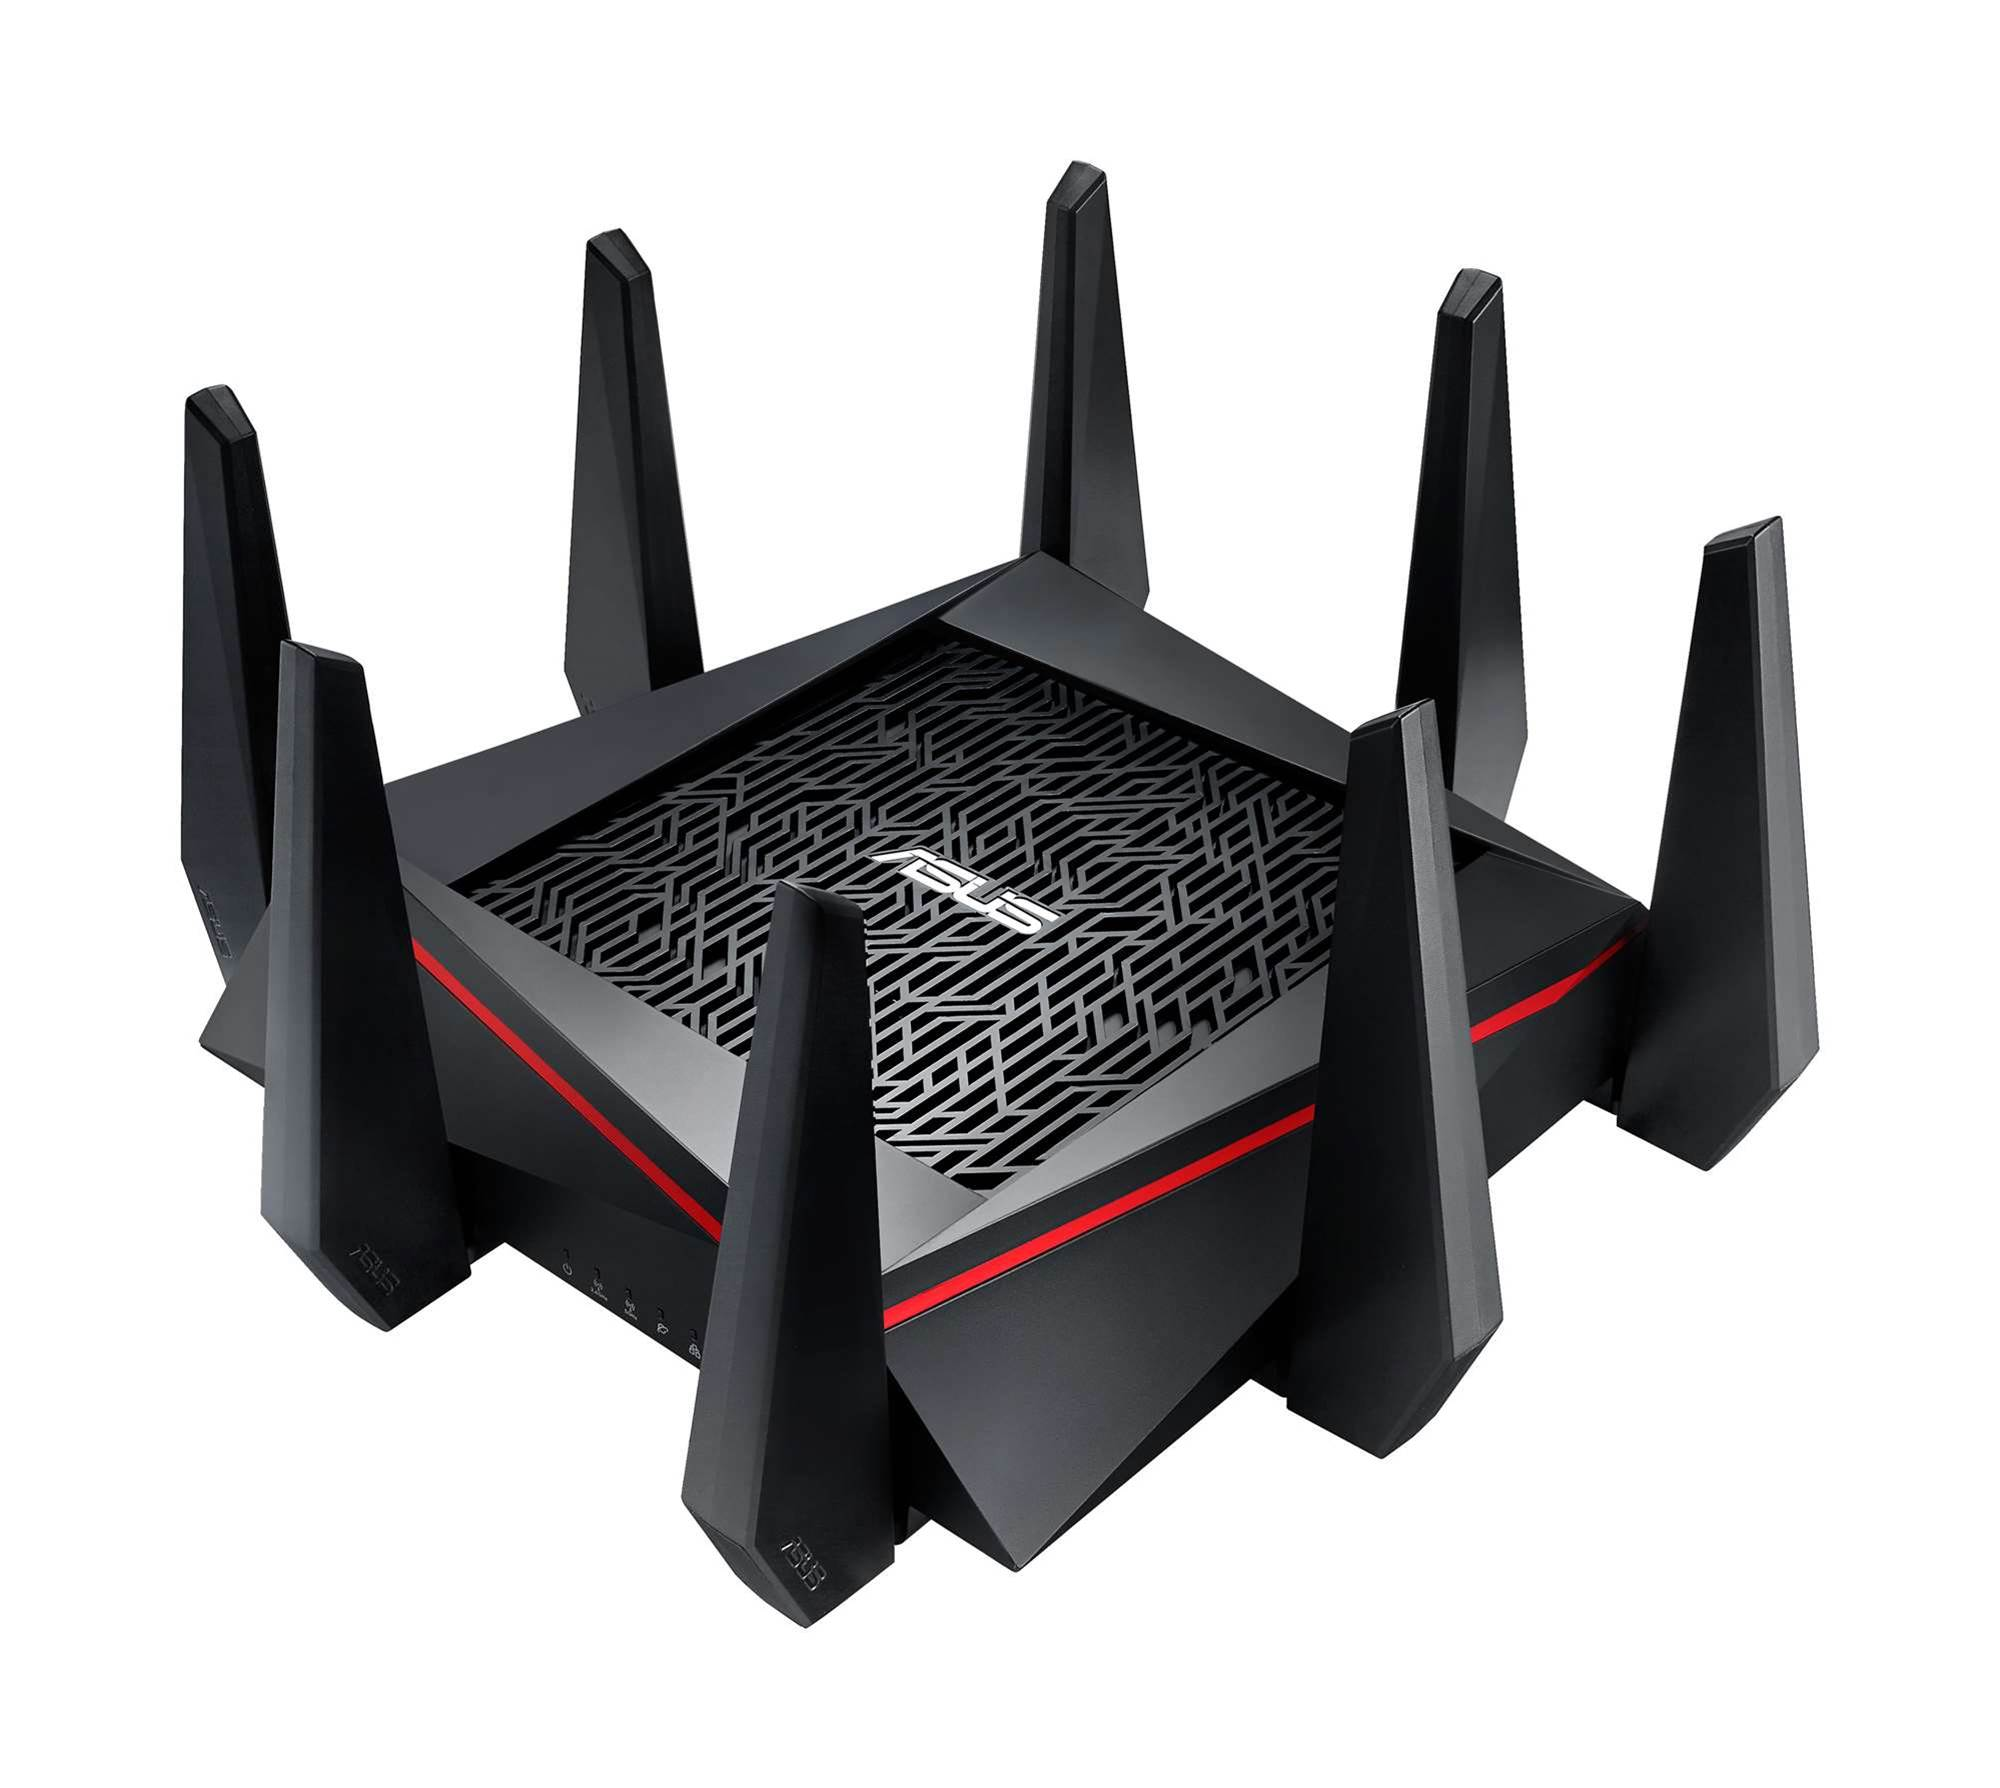 Asus releases the most outlandish router we've ever seen